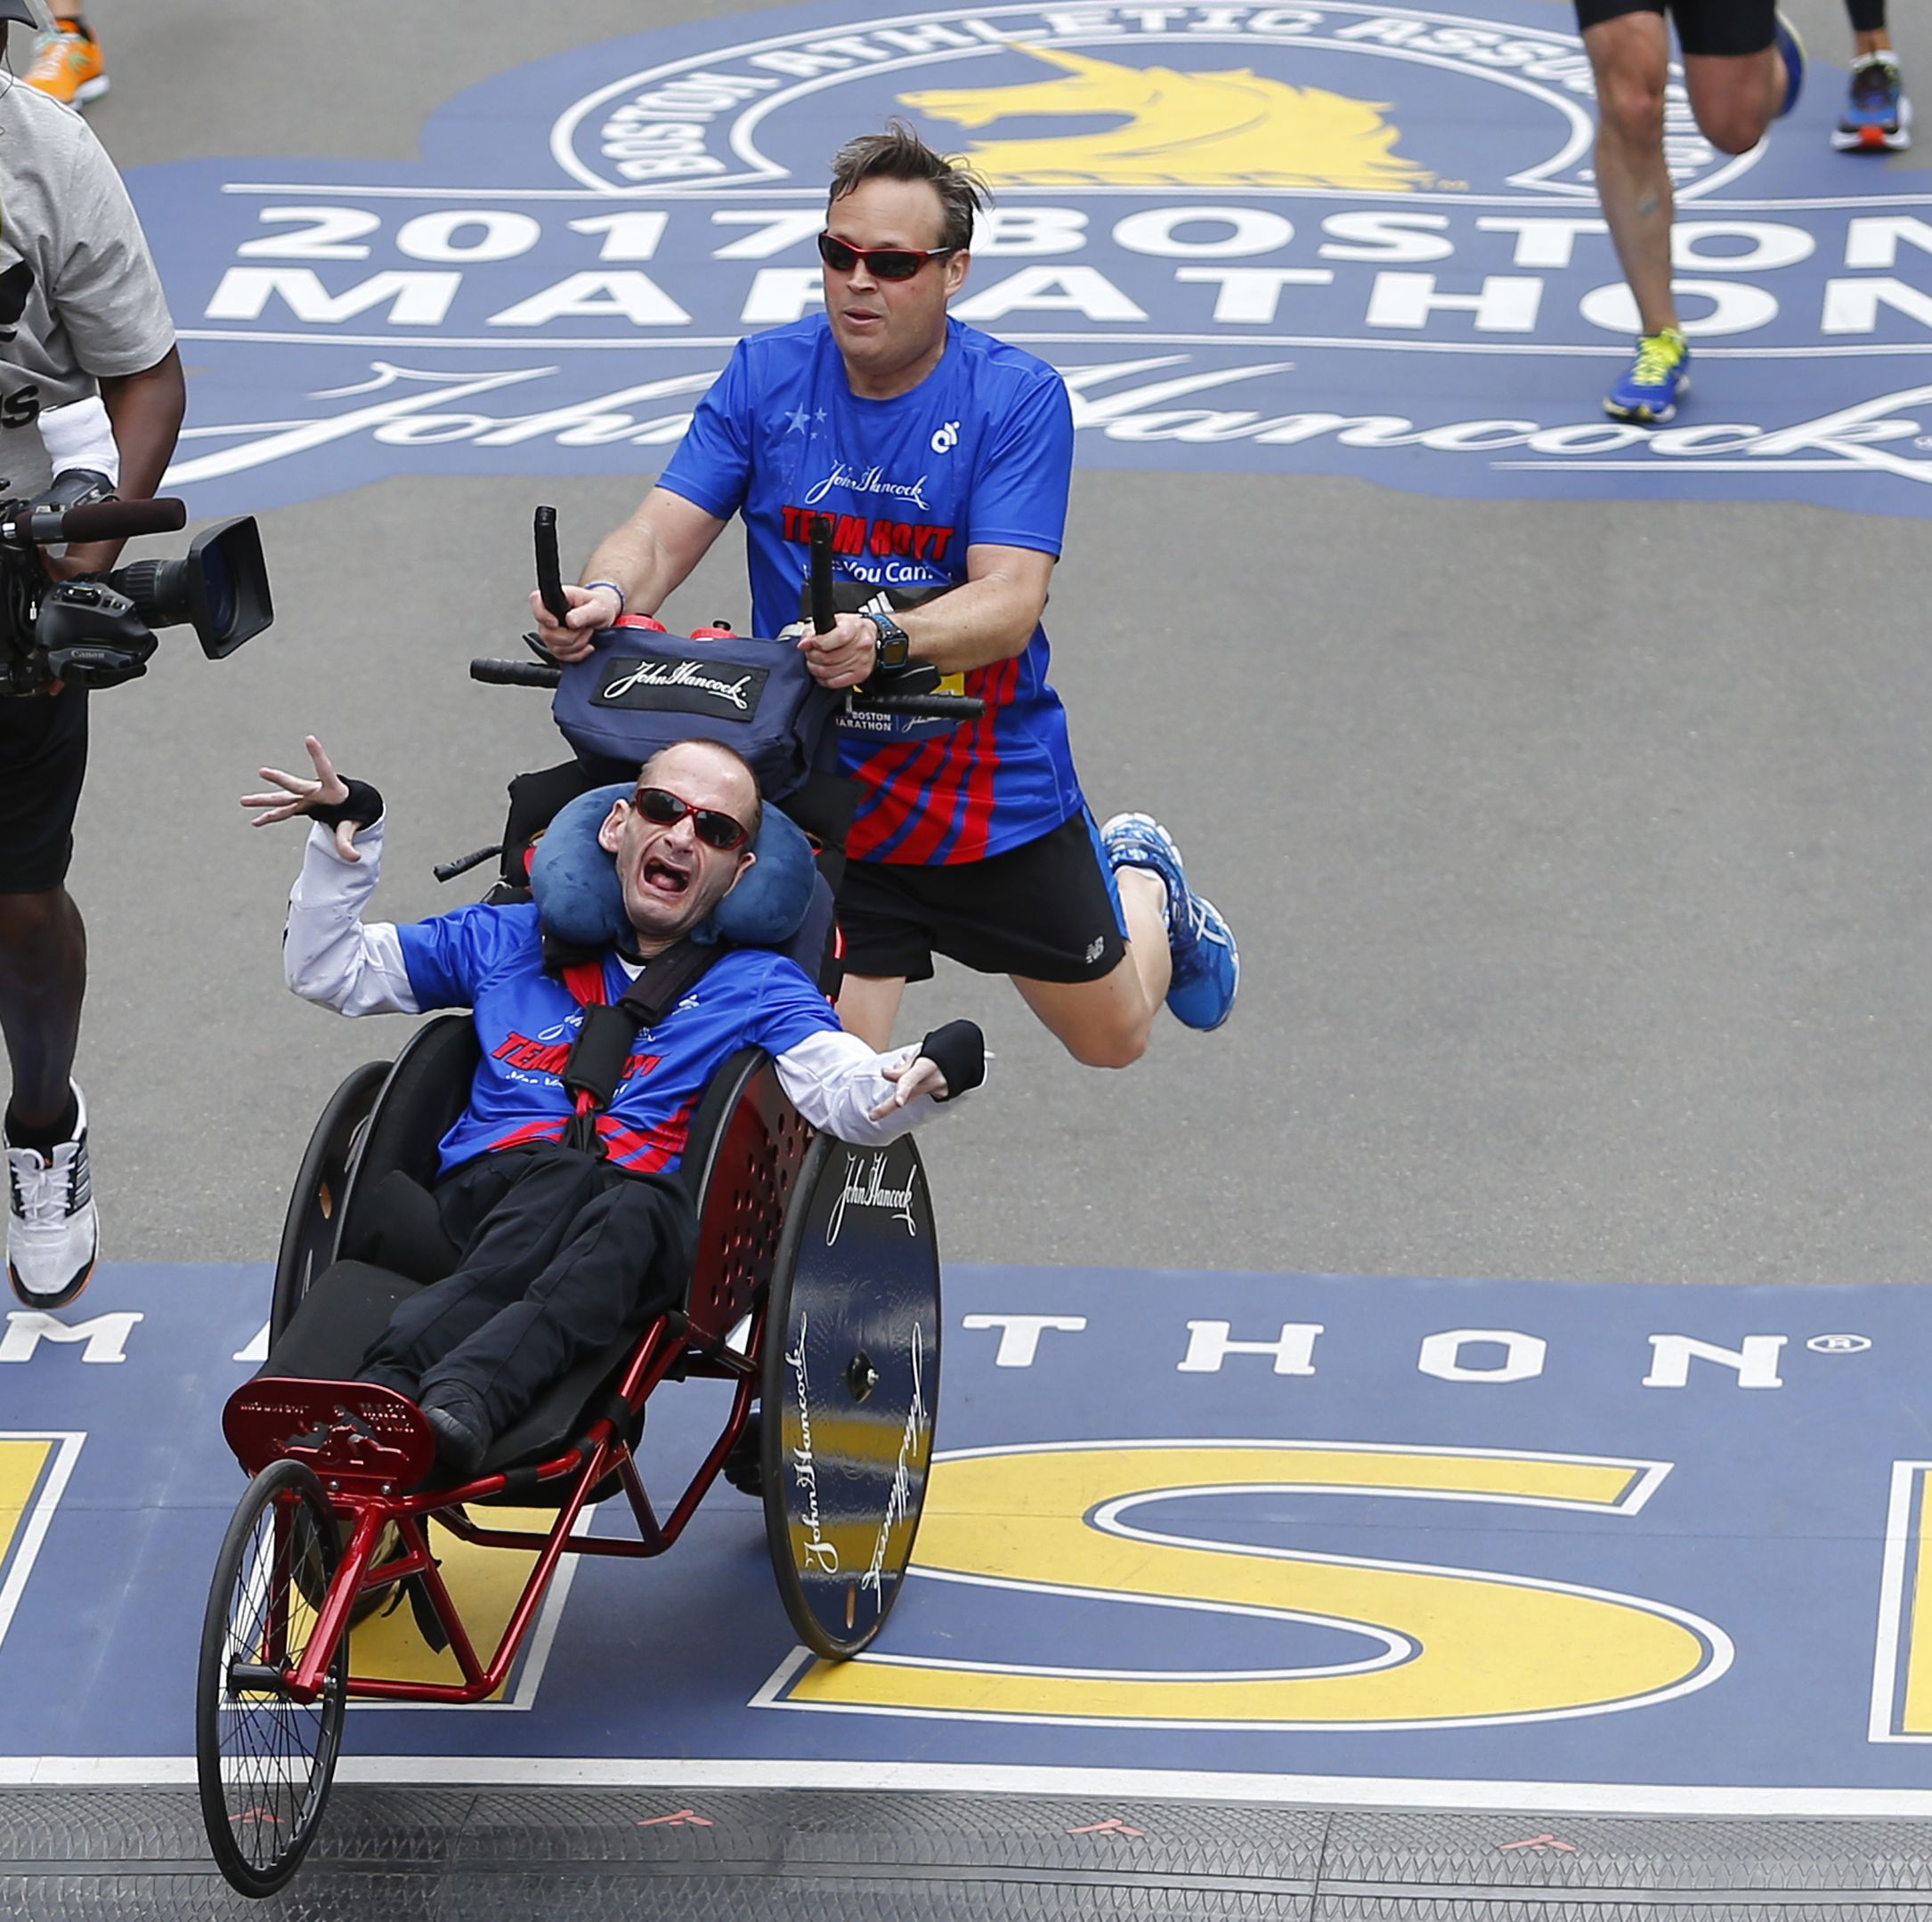 Boston Marathon Will Be Missing One of Its Heroes